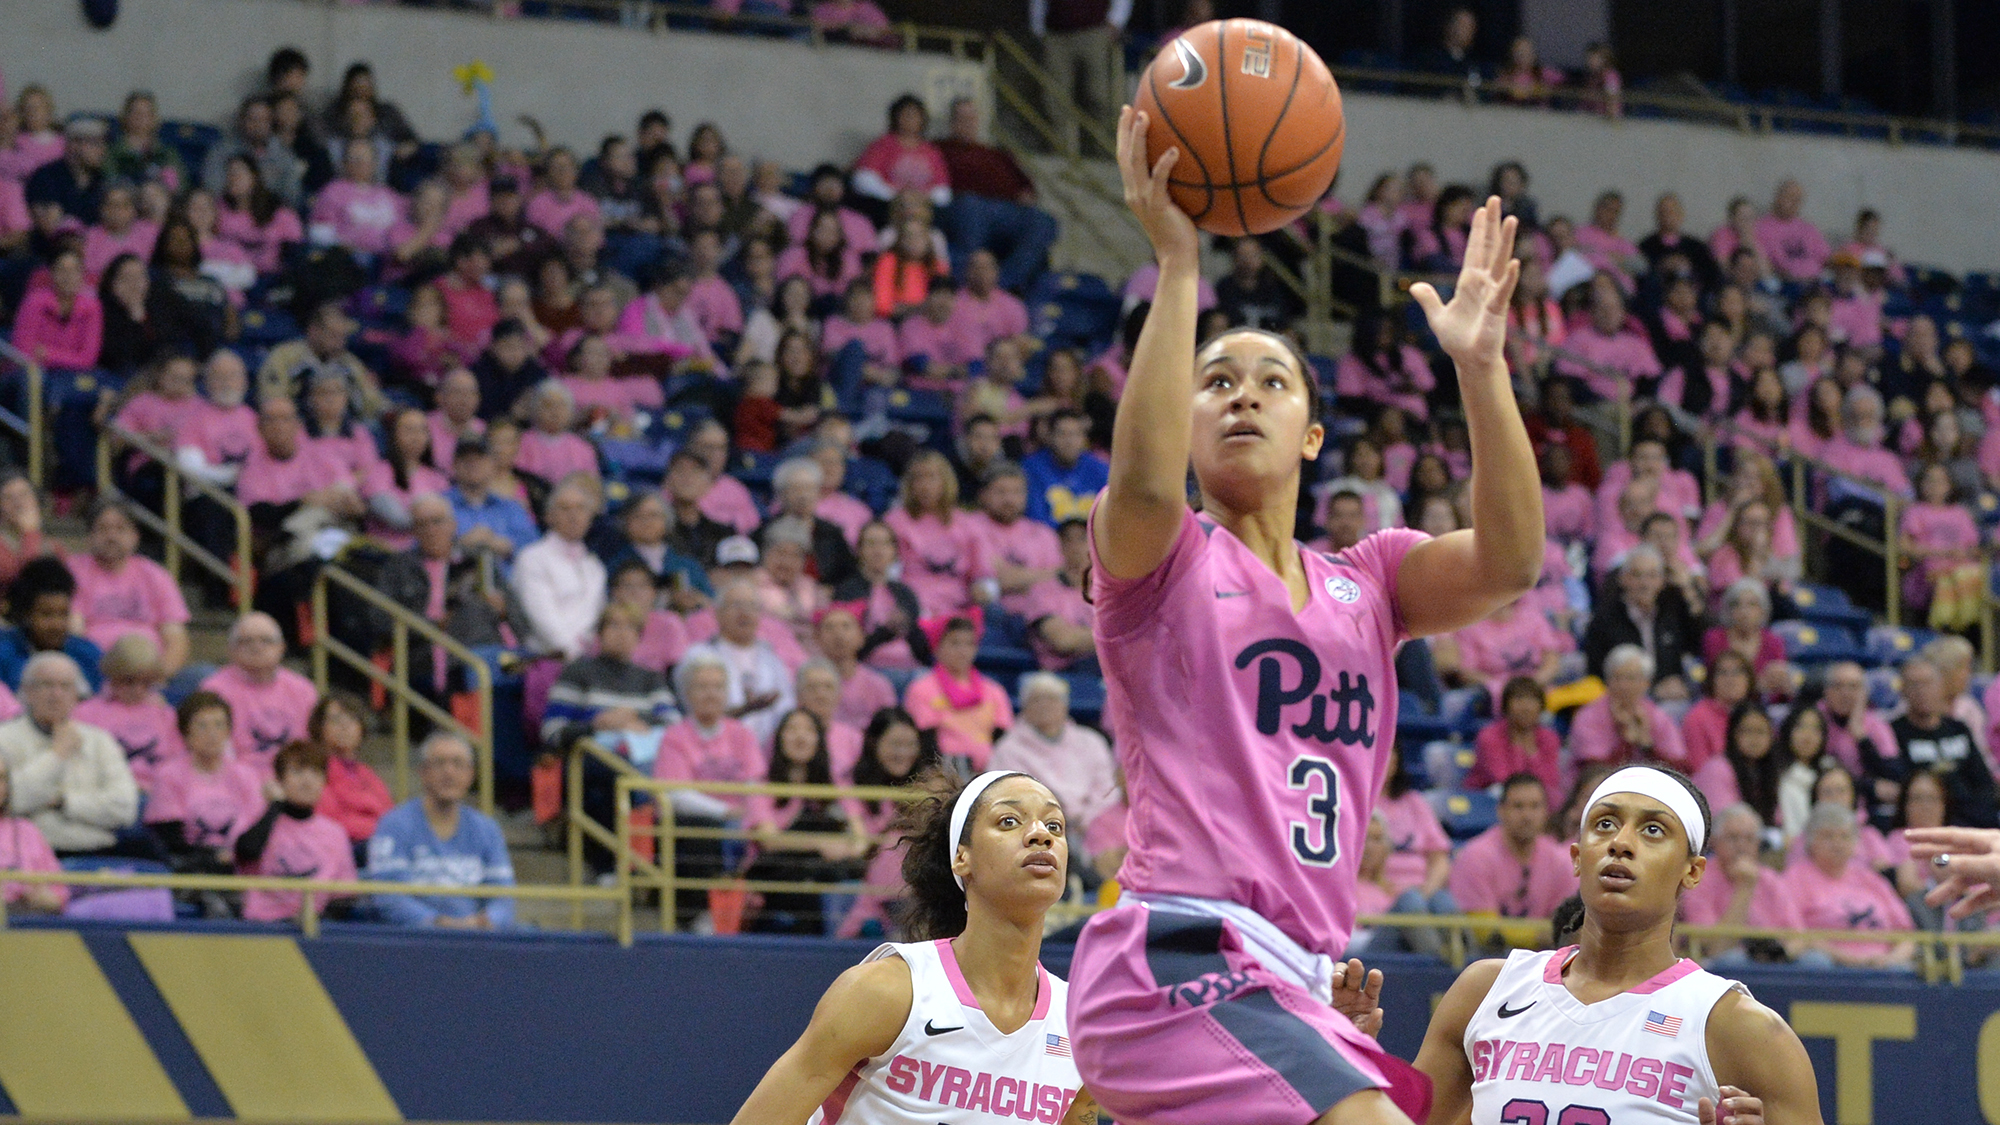 Panthers Prepared For 11th Annual Pink The Petersen Game